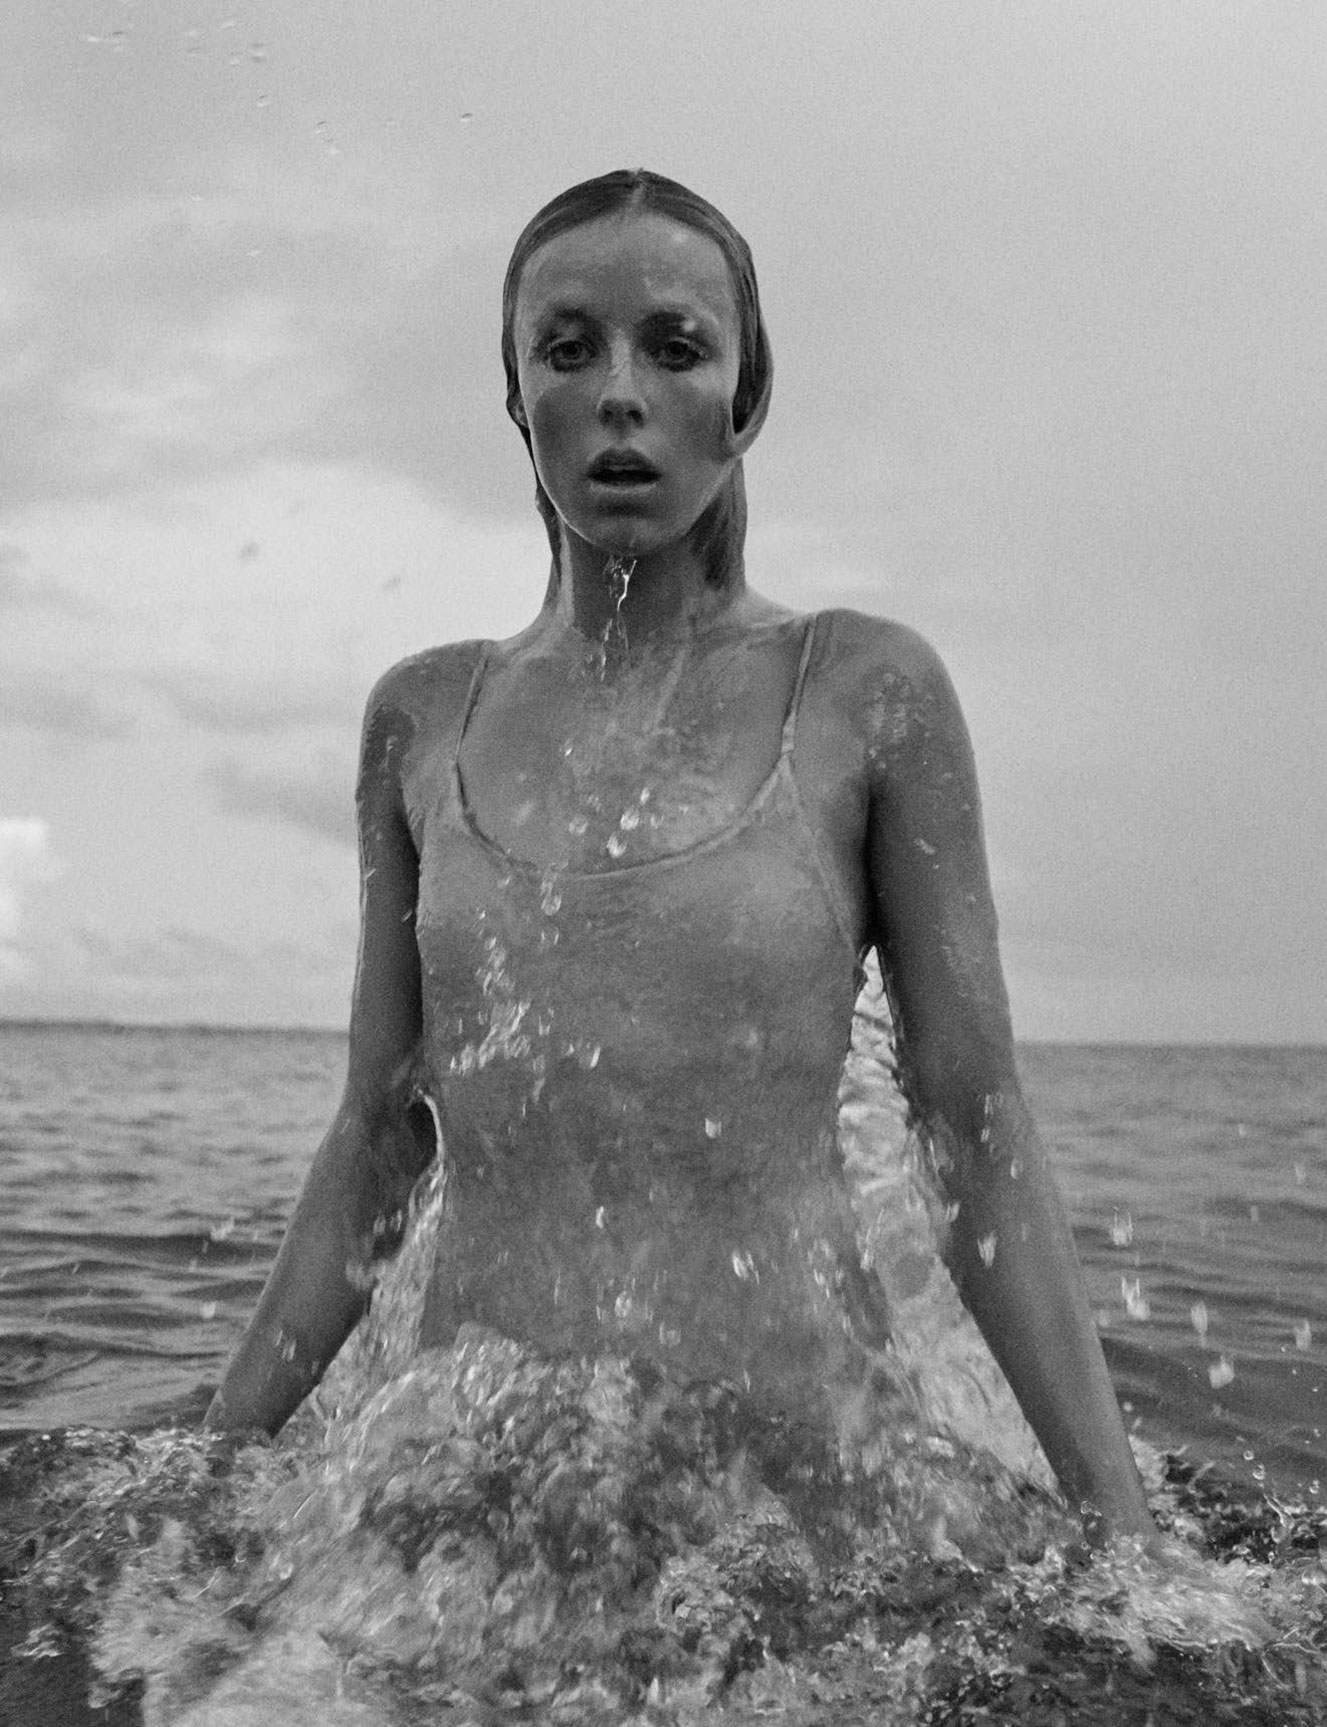 Loin des paves la plage / Edie Campbell by Mikael Jansson - Vogue Paris june/july 2018